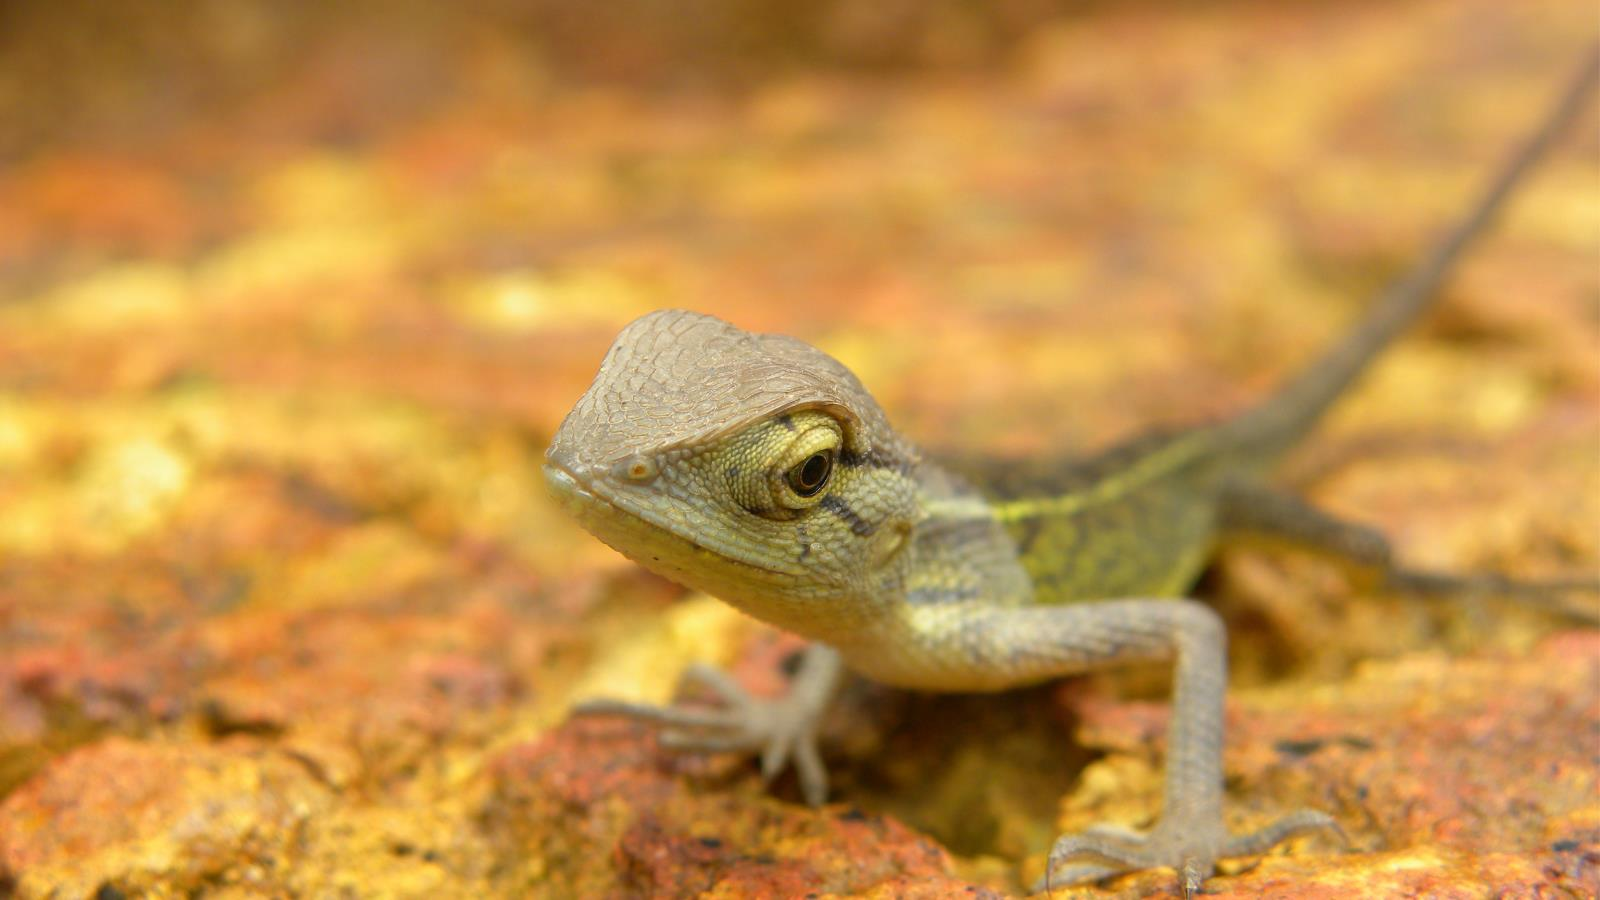 Lizard Wallpaper and Background Image   1600x900   ID ...